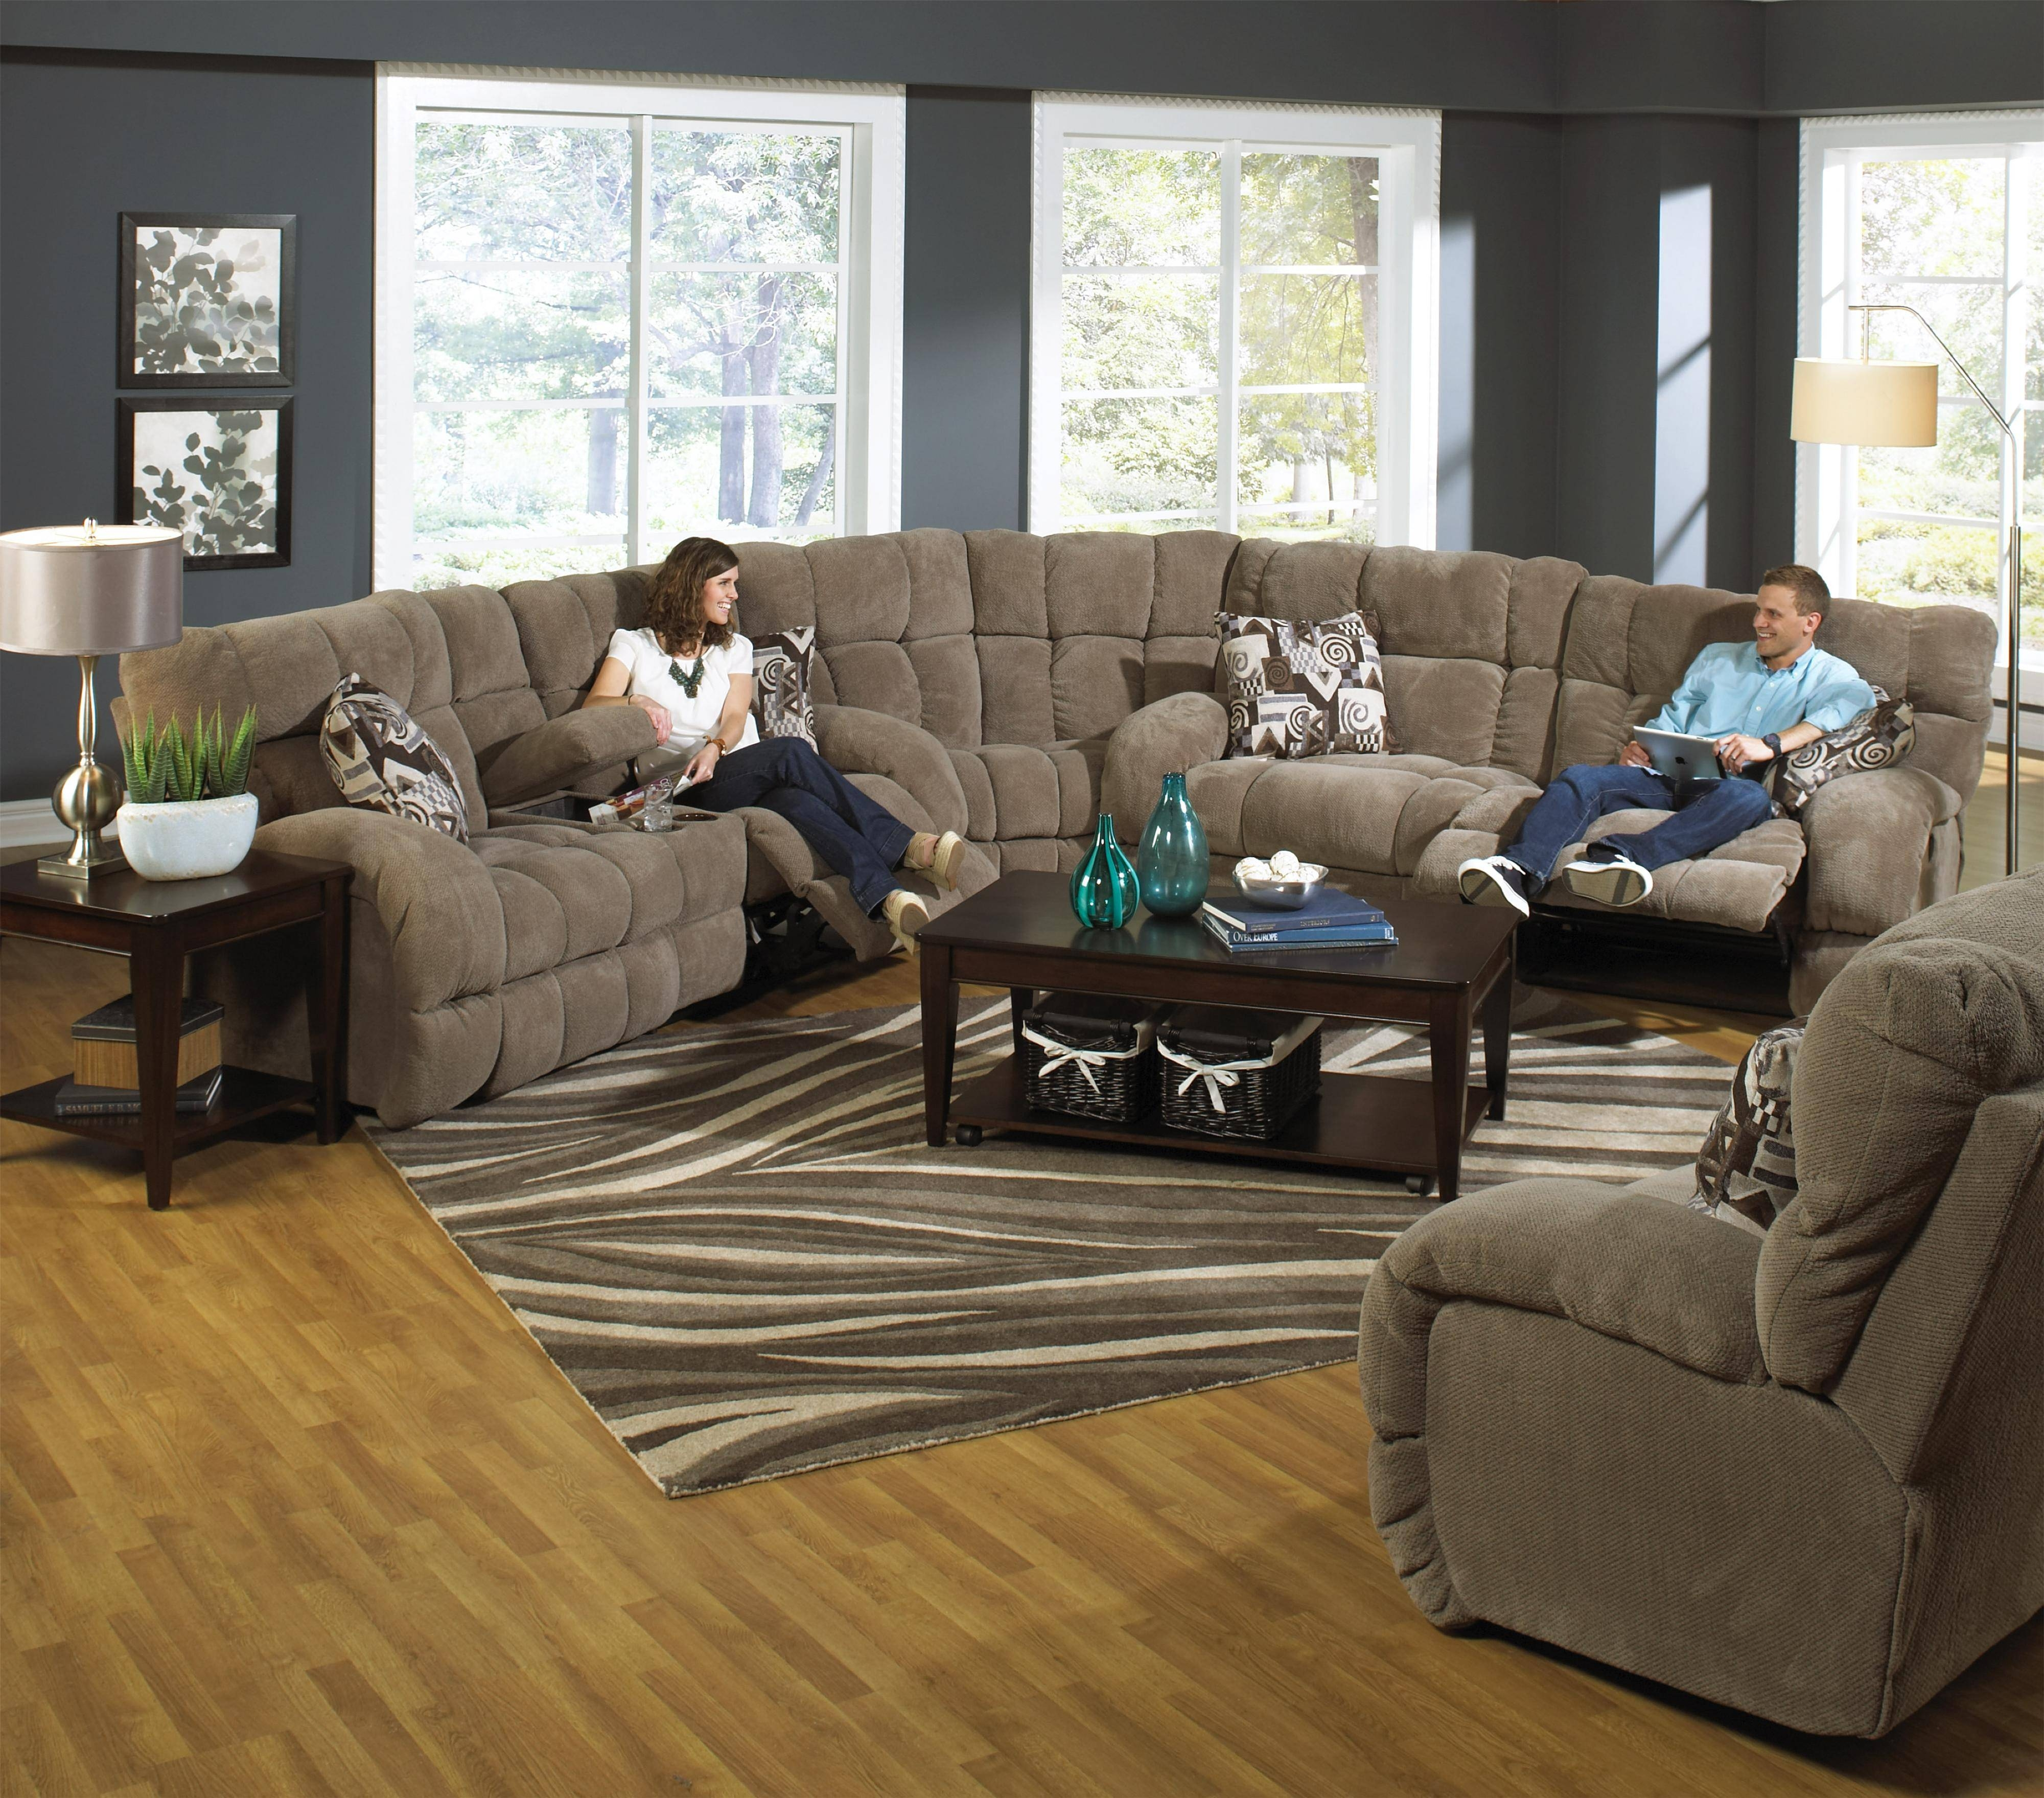 Power Reclining Sectional Sofa With Cup Holderscatnapper Pertaining To Catnapper Recliner Sofas (View 10 of 15)